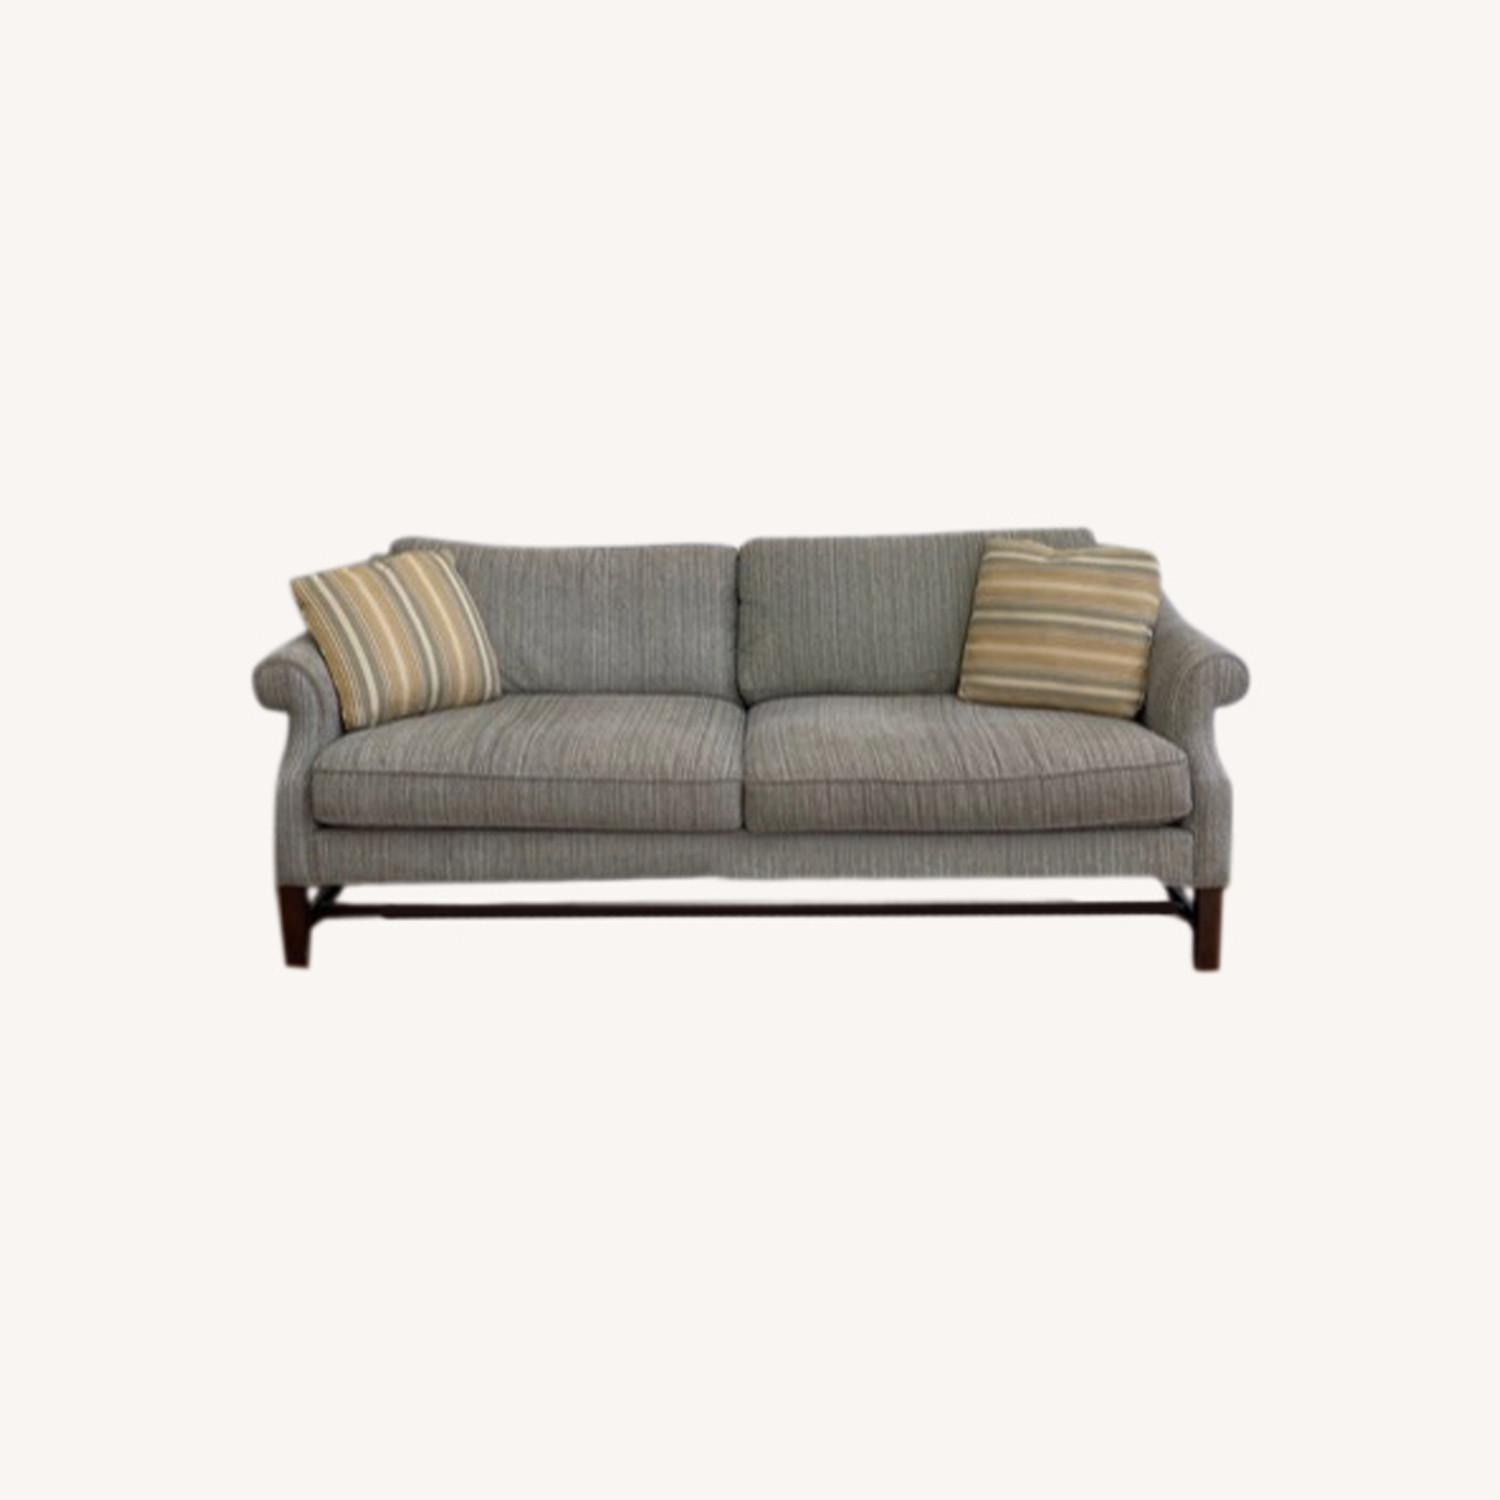 Sofa with Pillows Grey White Blue Blend - image-0